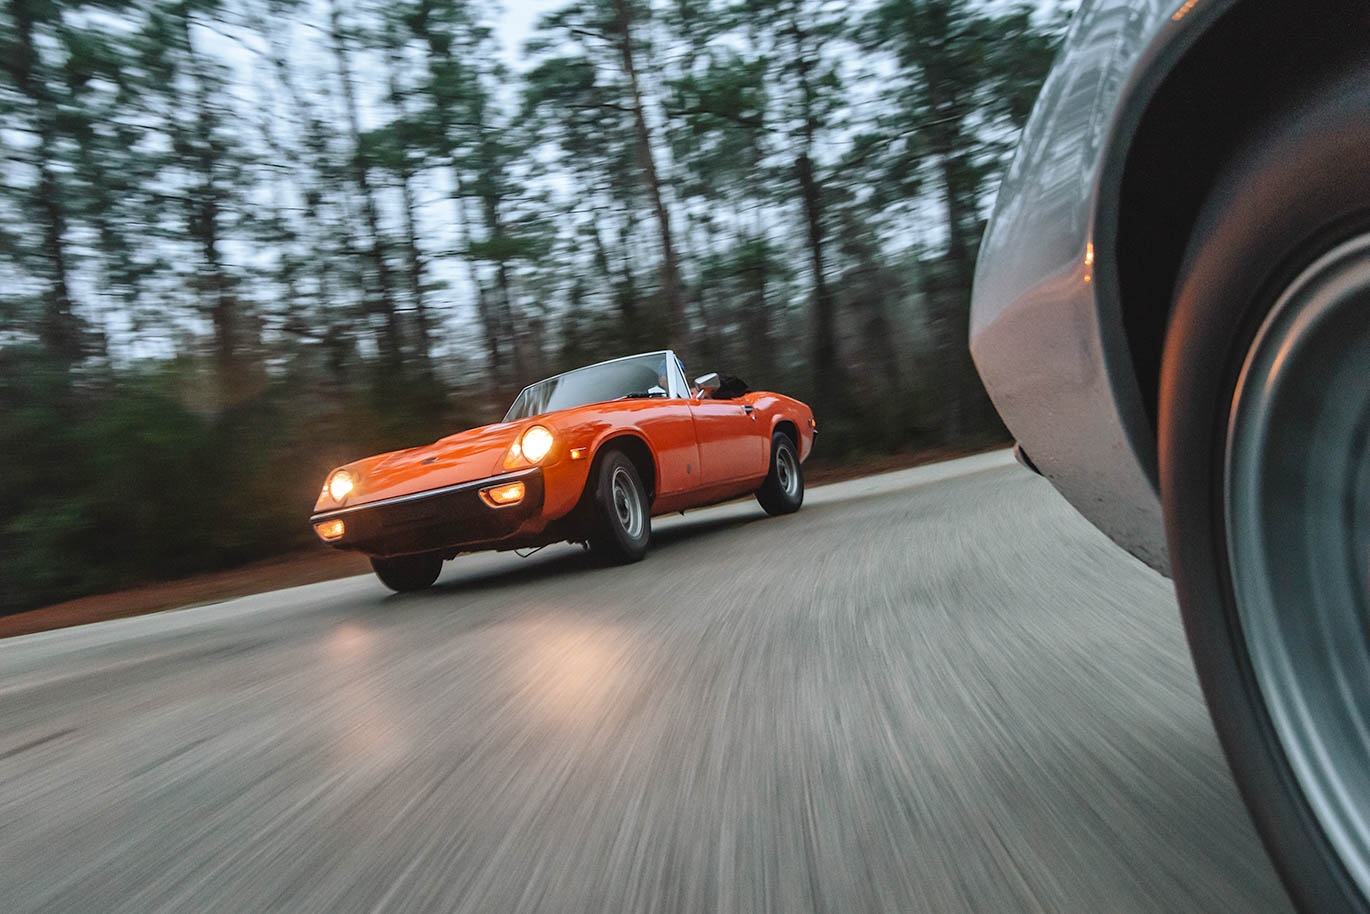 The Jensen-Healey was powered by a Lotus twin-cam four that accelerated the 2100-pound roadster to 60 in 8.1 seconds.